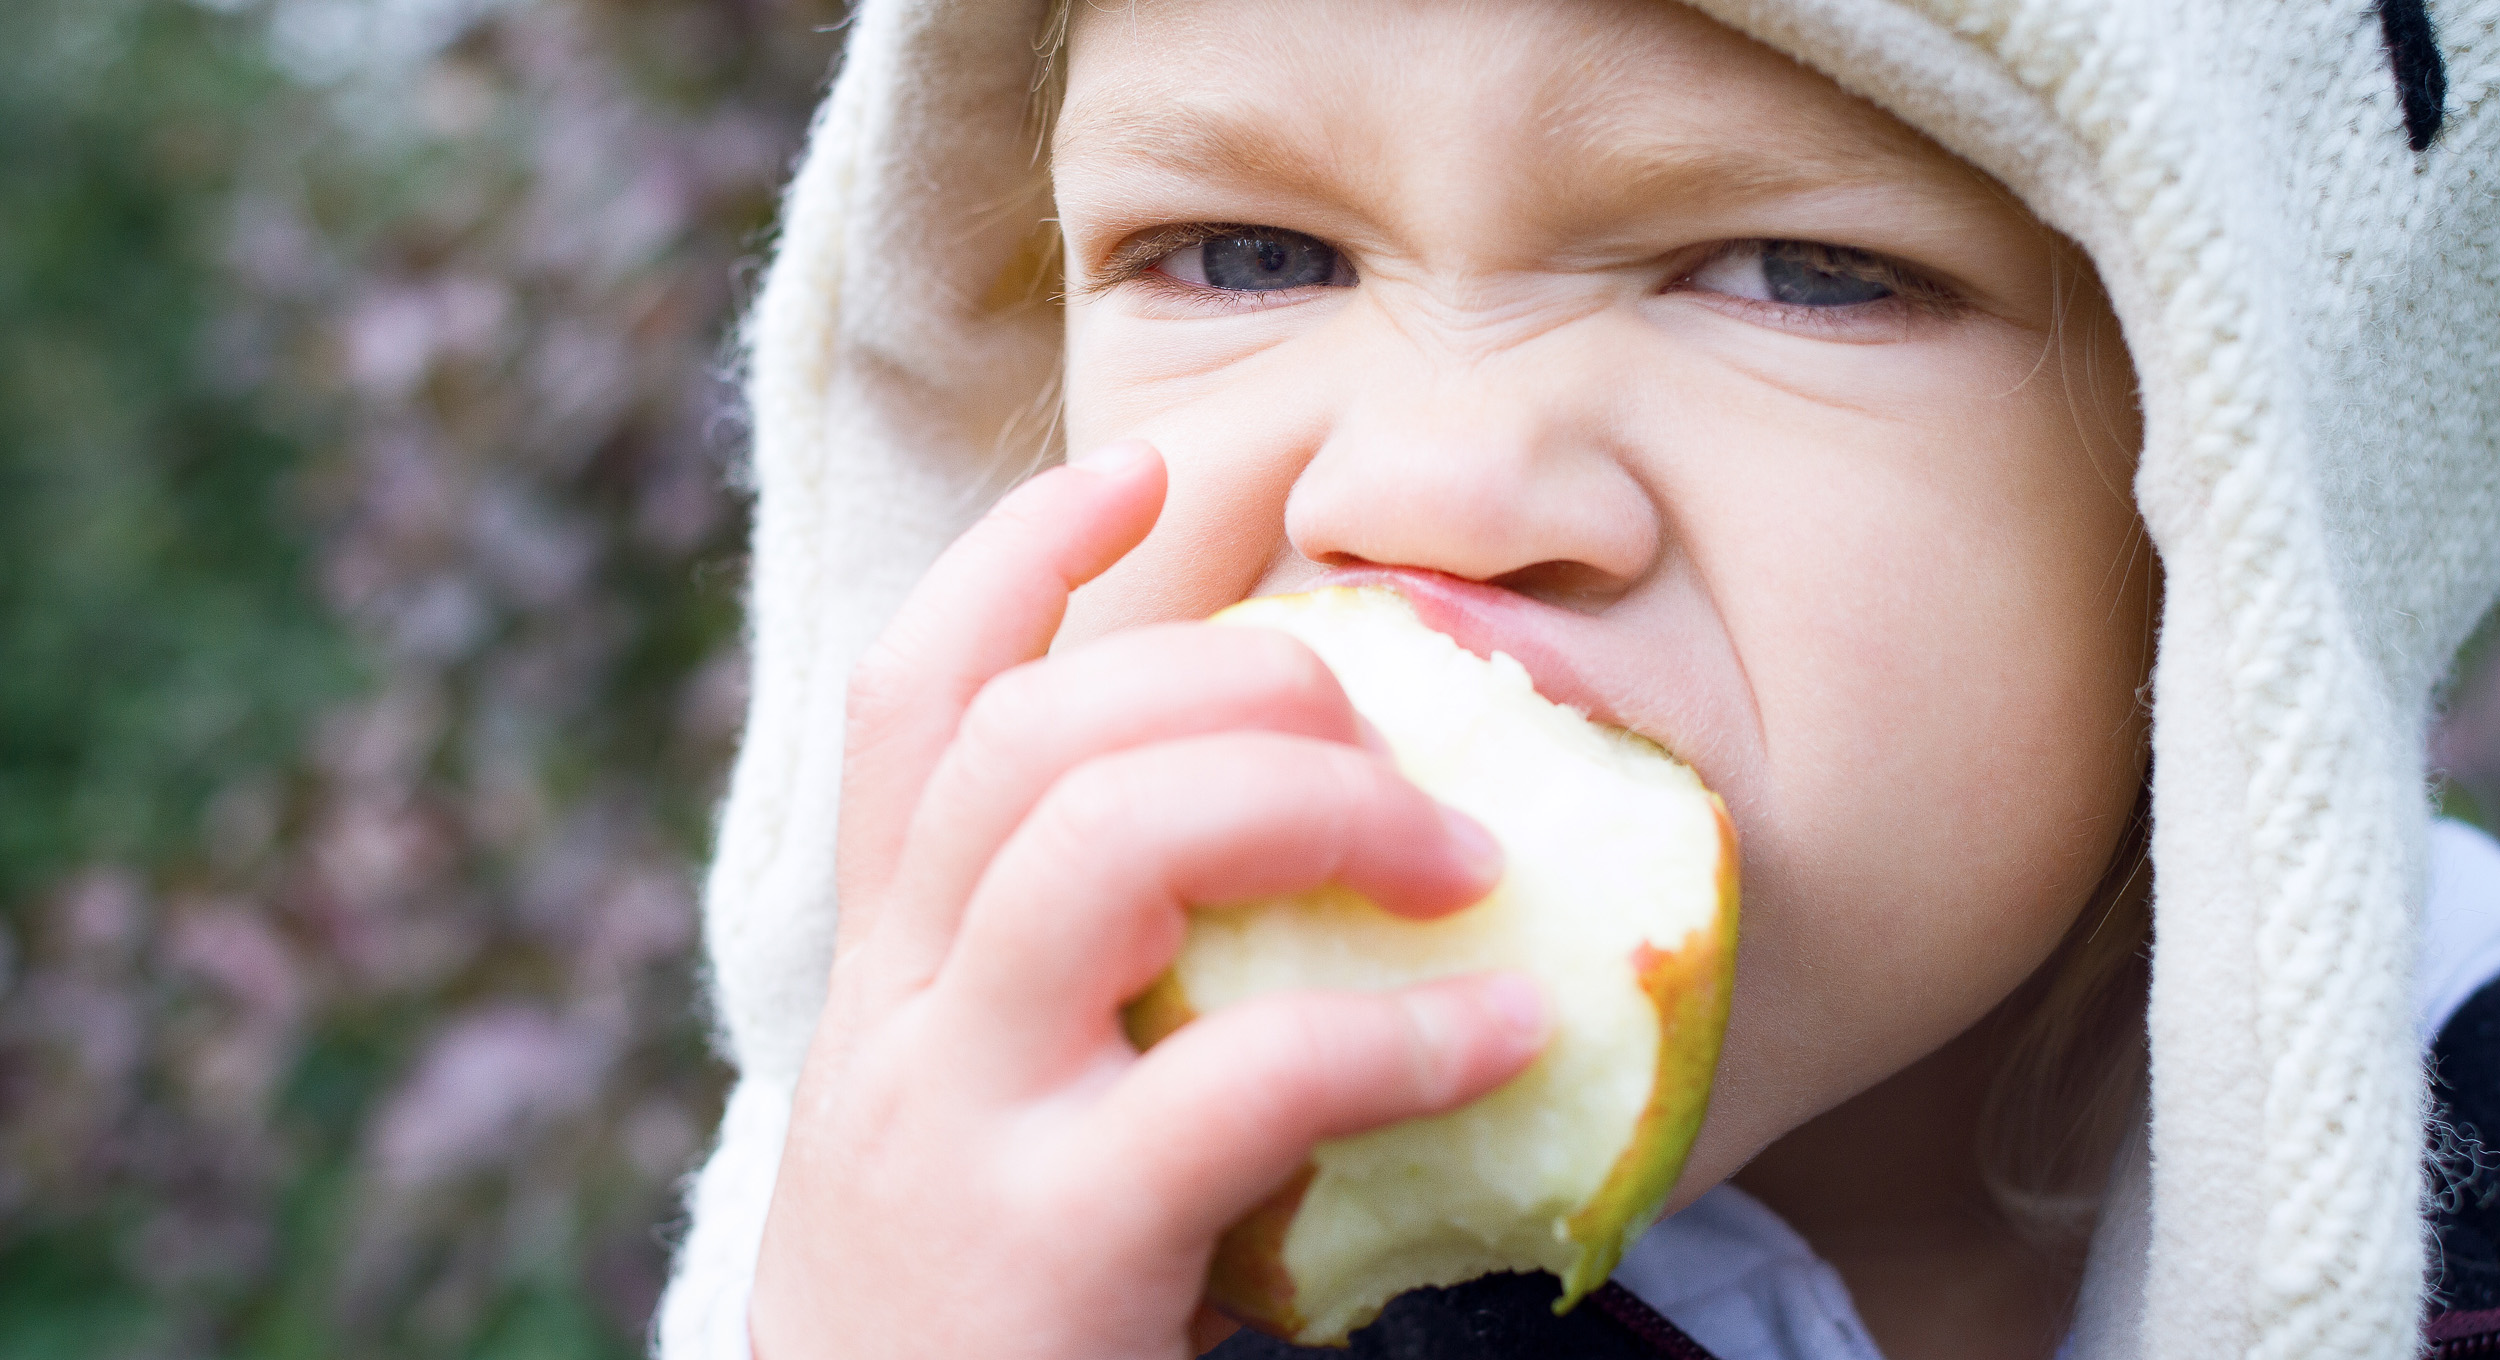 Alternative Diets for Kids? Here's What You Need to Know